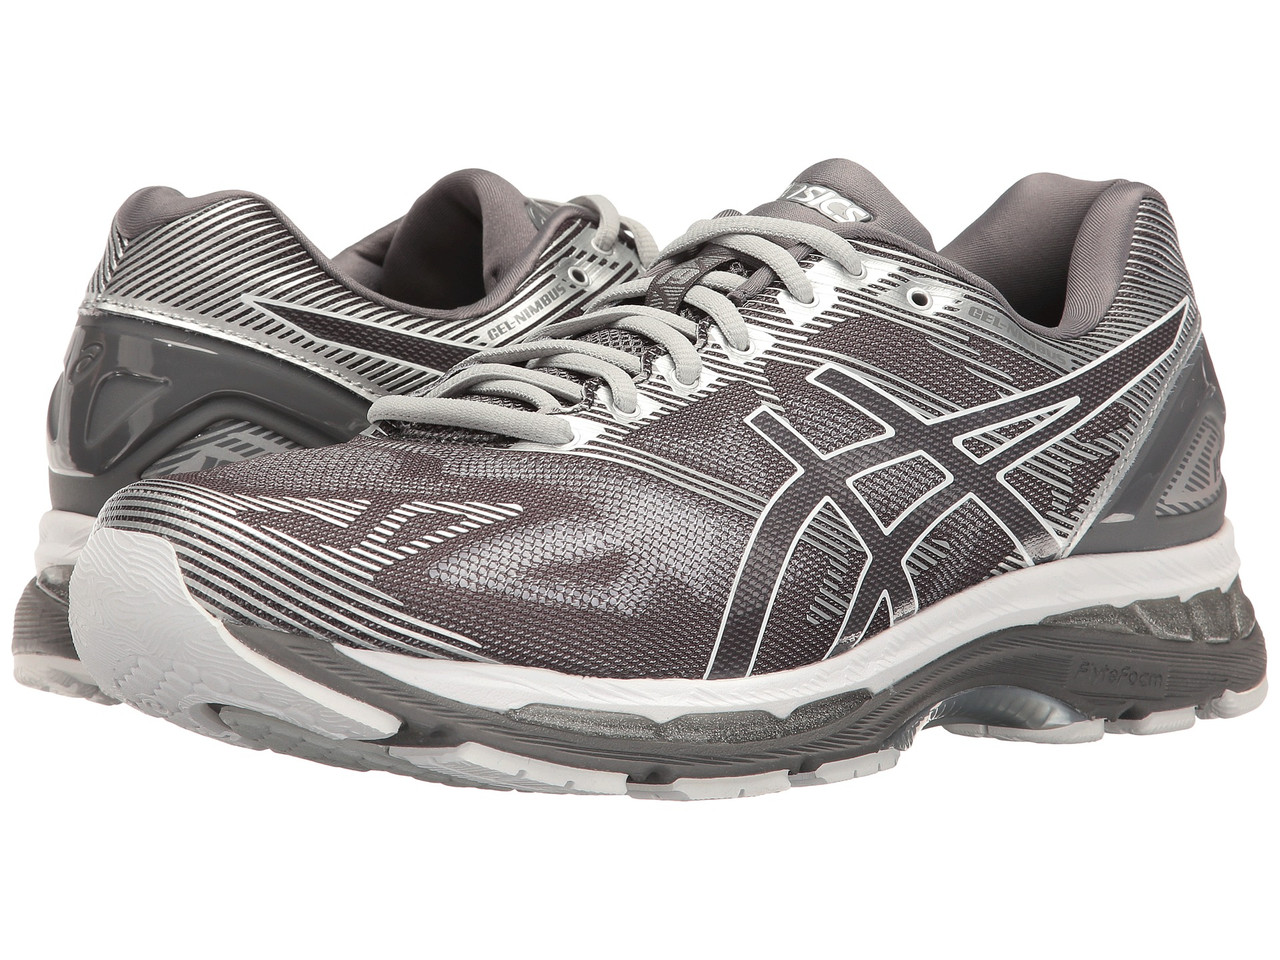 low priced 36dd6 92077 Men's Asics Gel-Nimbus 19 Running Shoe Wide